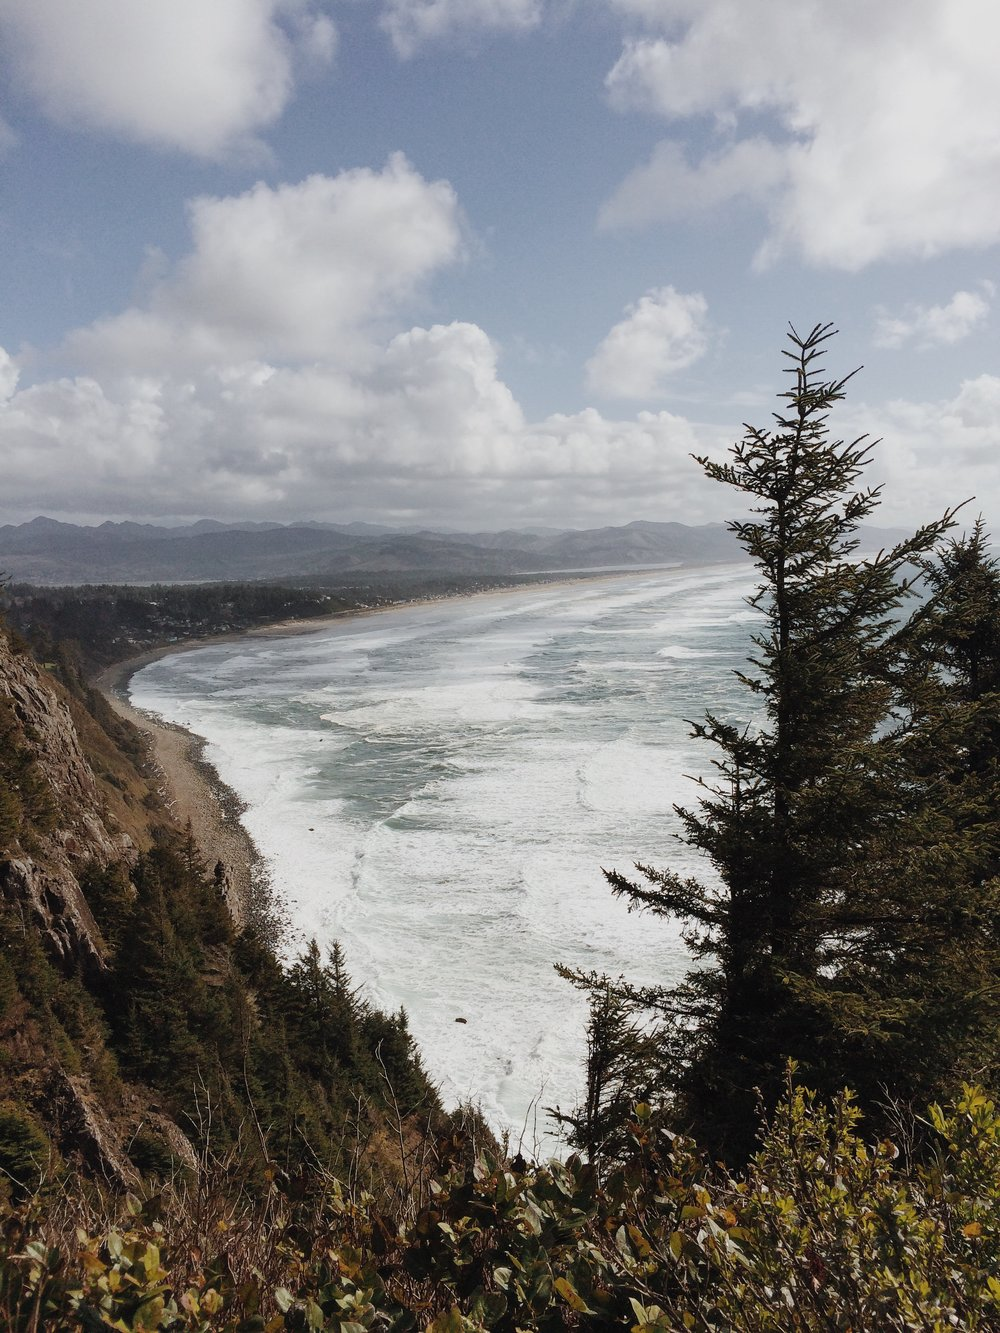 Roadtrip along the Oregon Coast